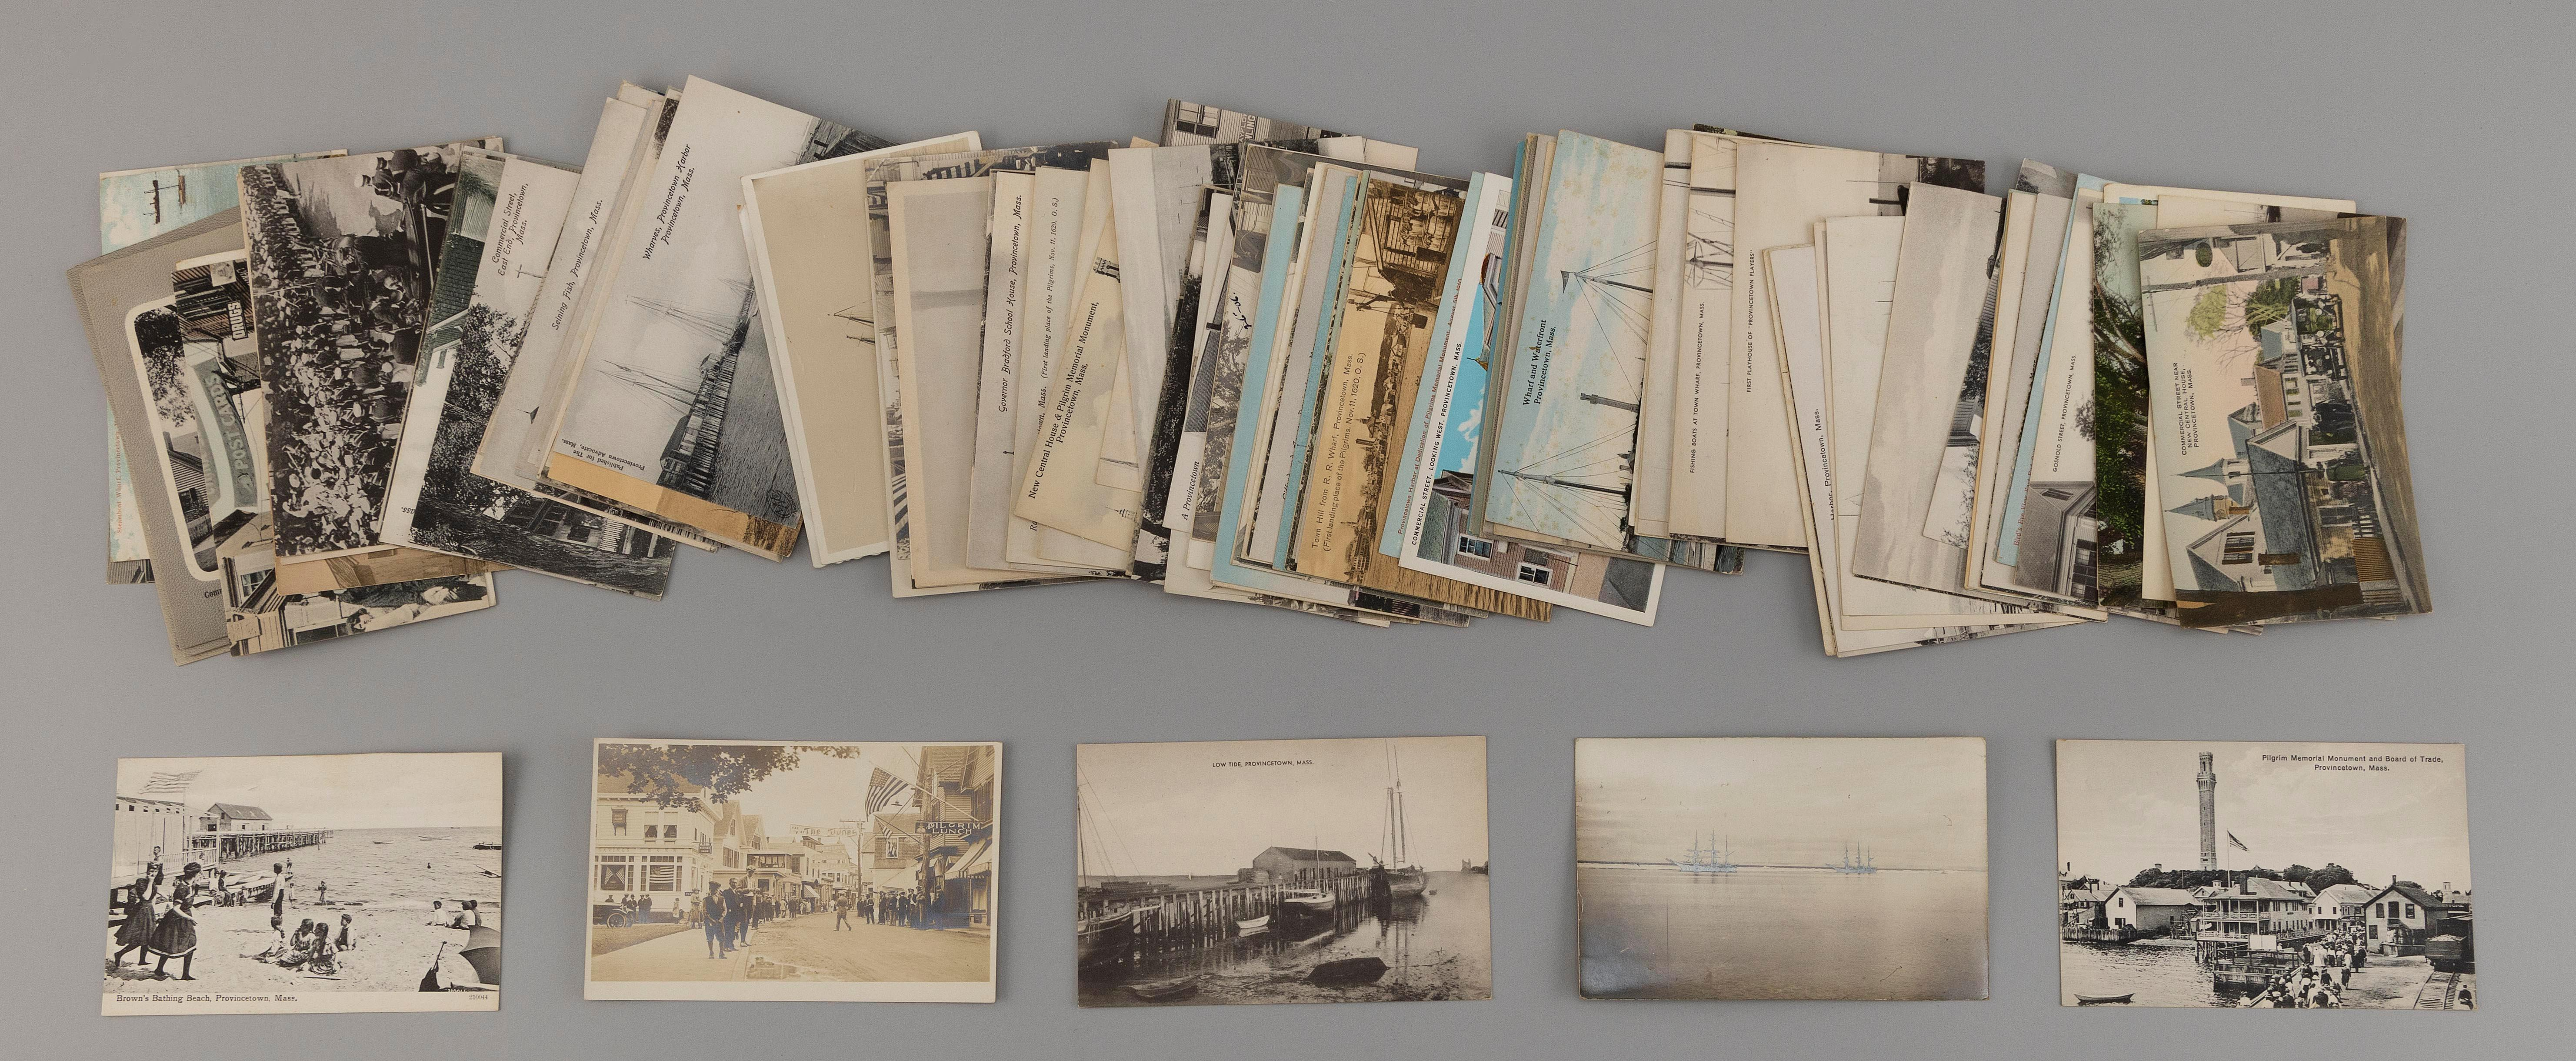 (CAPE COD: PROVINCETOWN) 137 POSTCARDS Real photo: Aug. 10th parade, boats in harbor, beached two-masted schooner, street scene with...